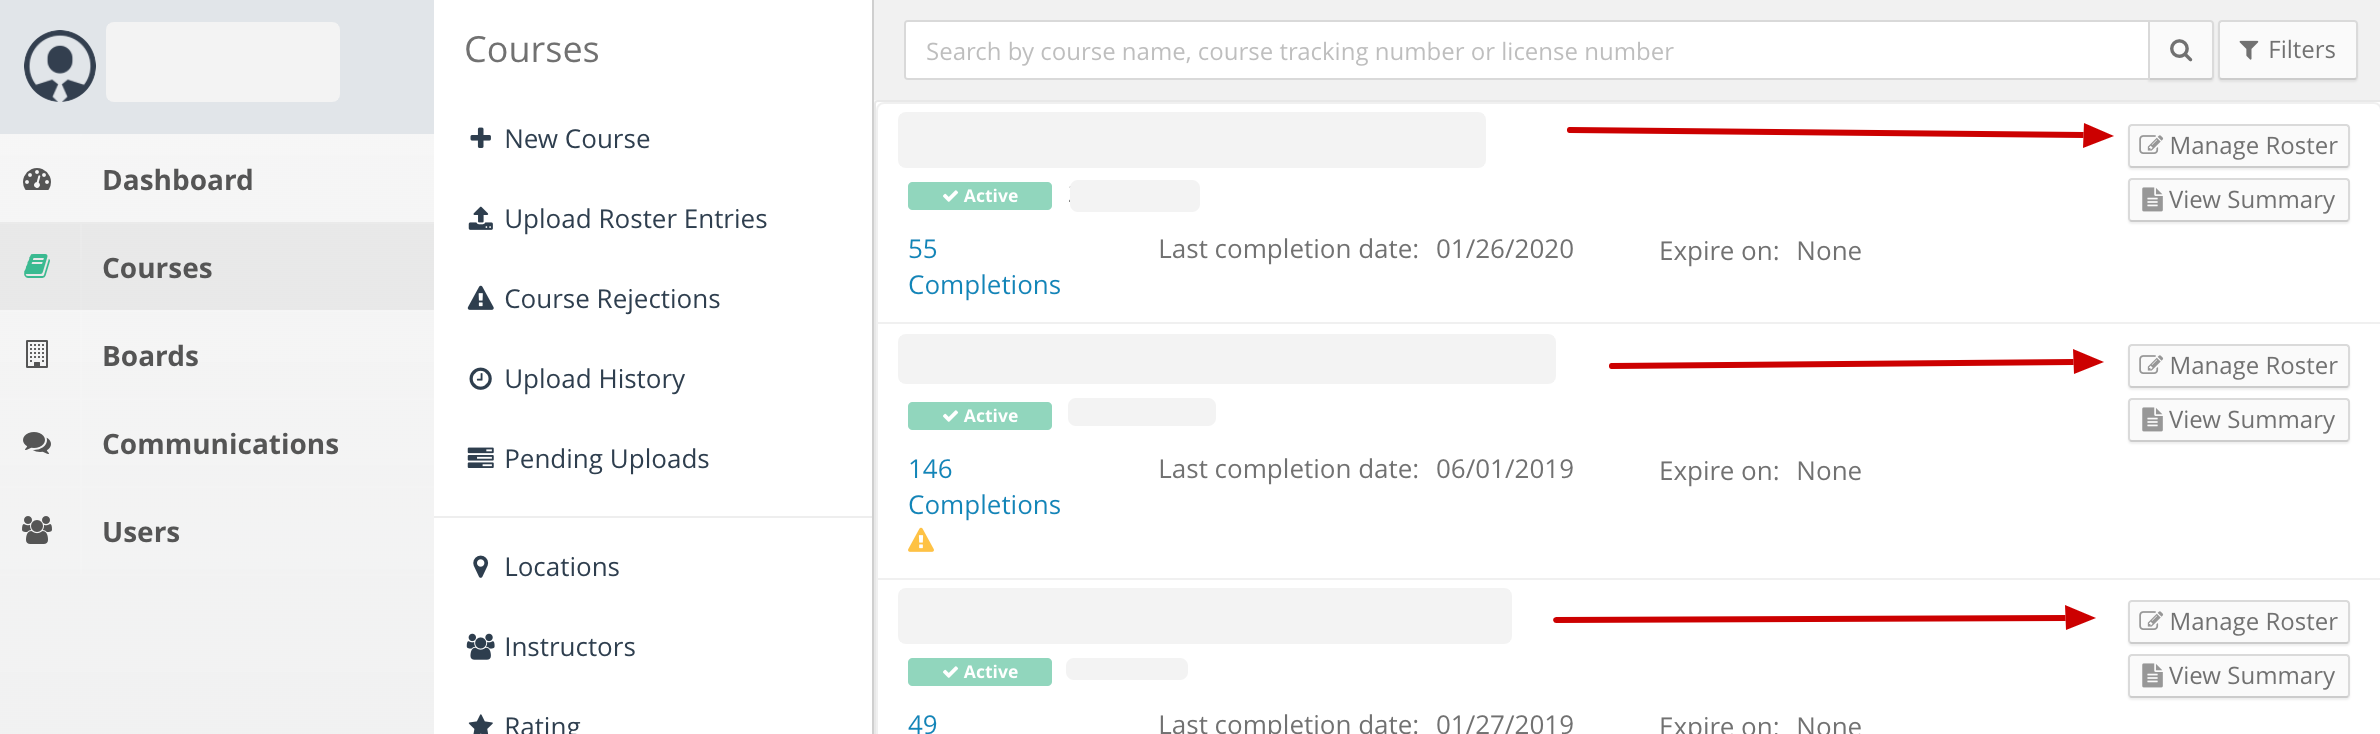 Screenshot of a provider course list page. Arrows point to the Roster buttons next to each course.